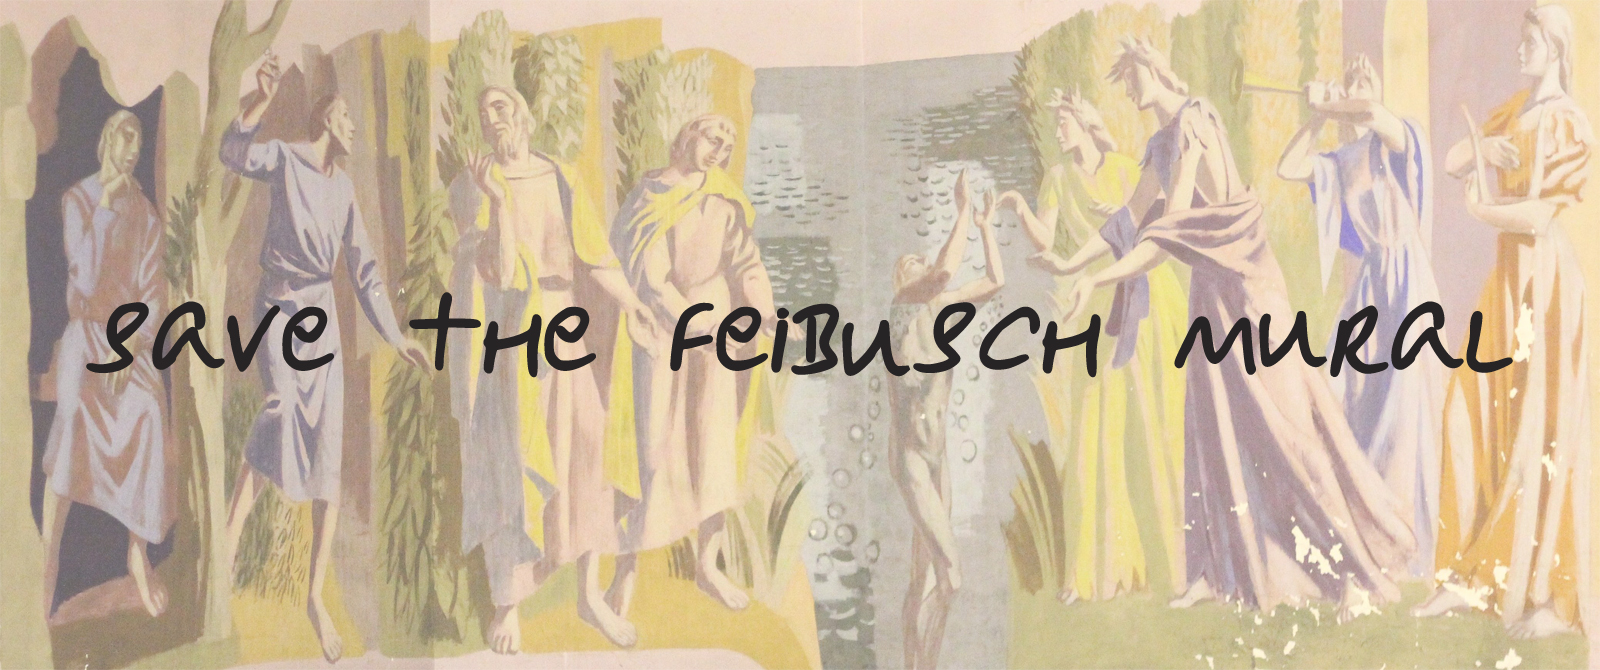 Save the Feibusch Mural